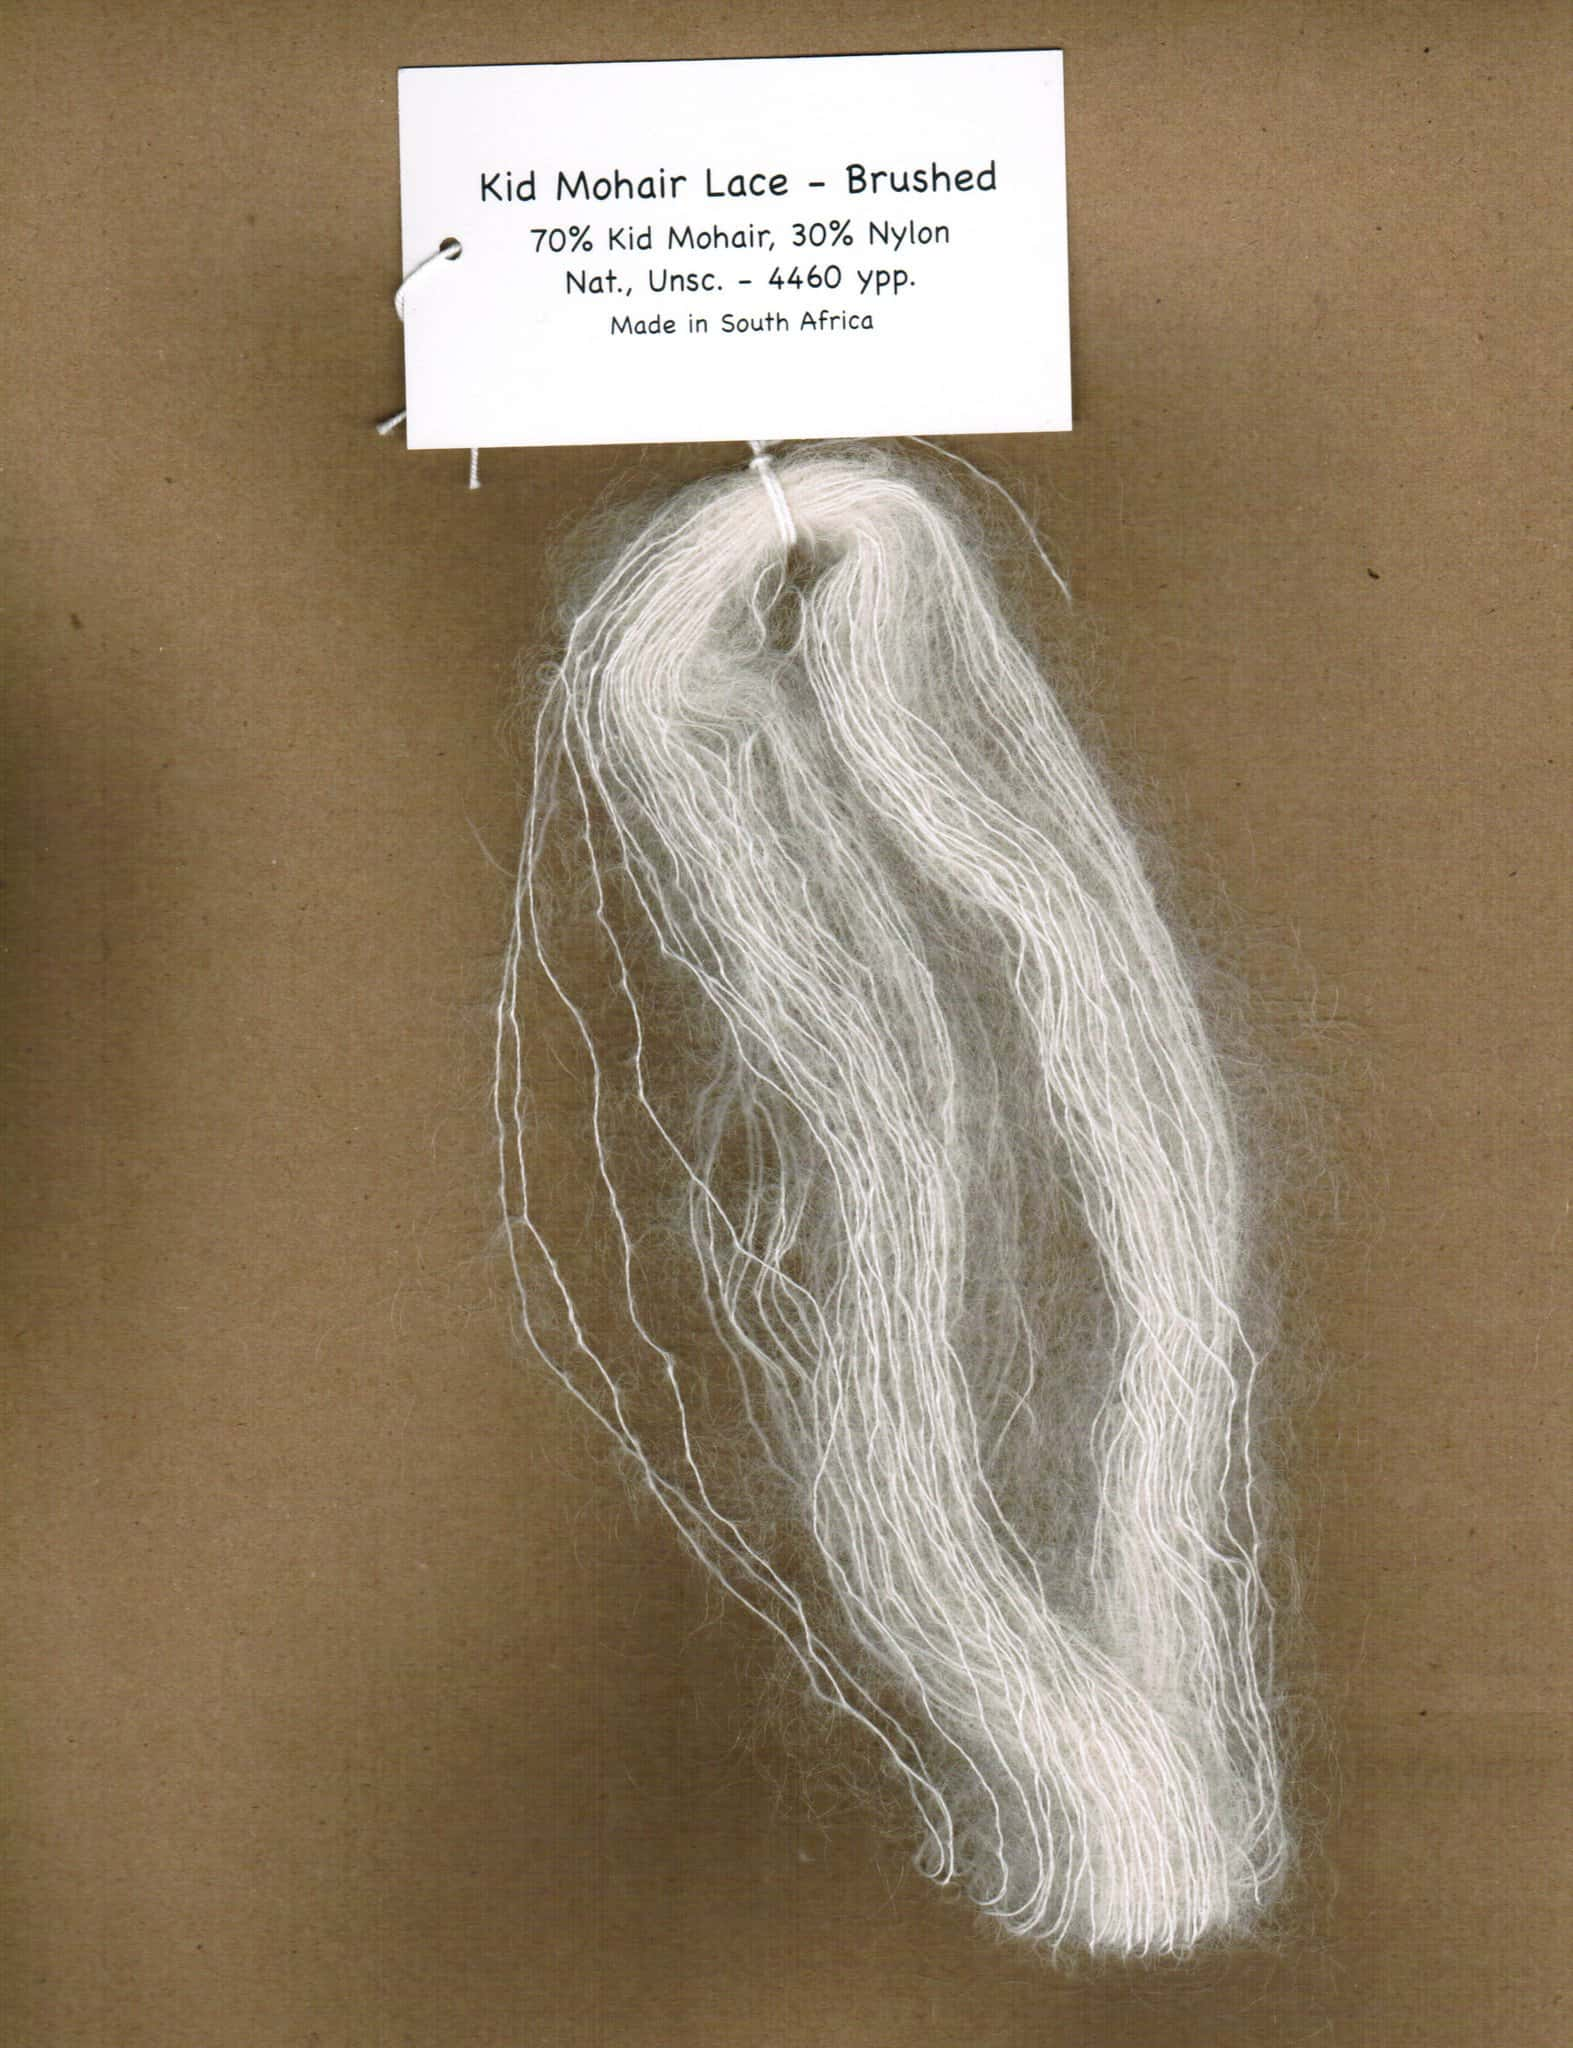 Kid Mohair Lace Brushed Image